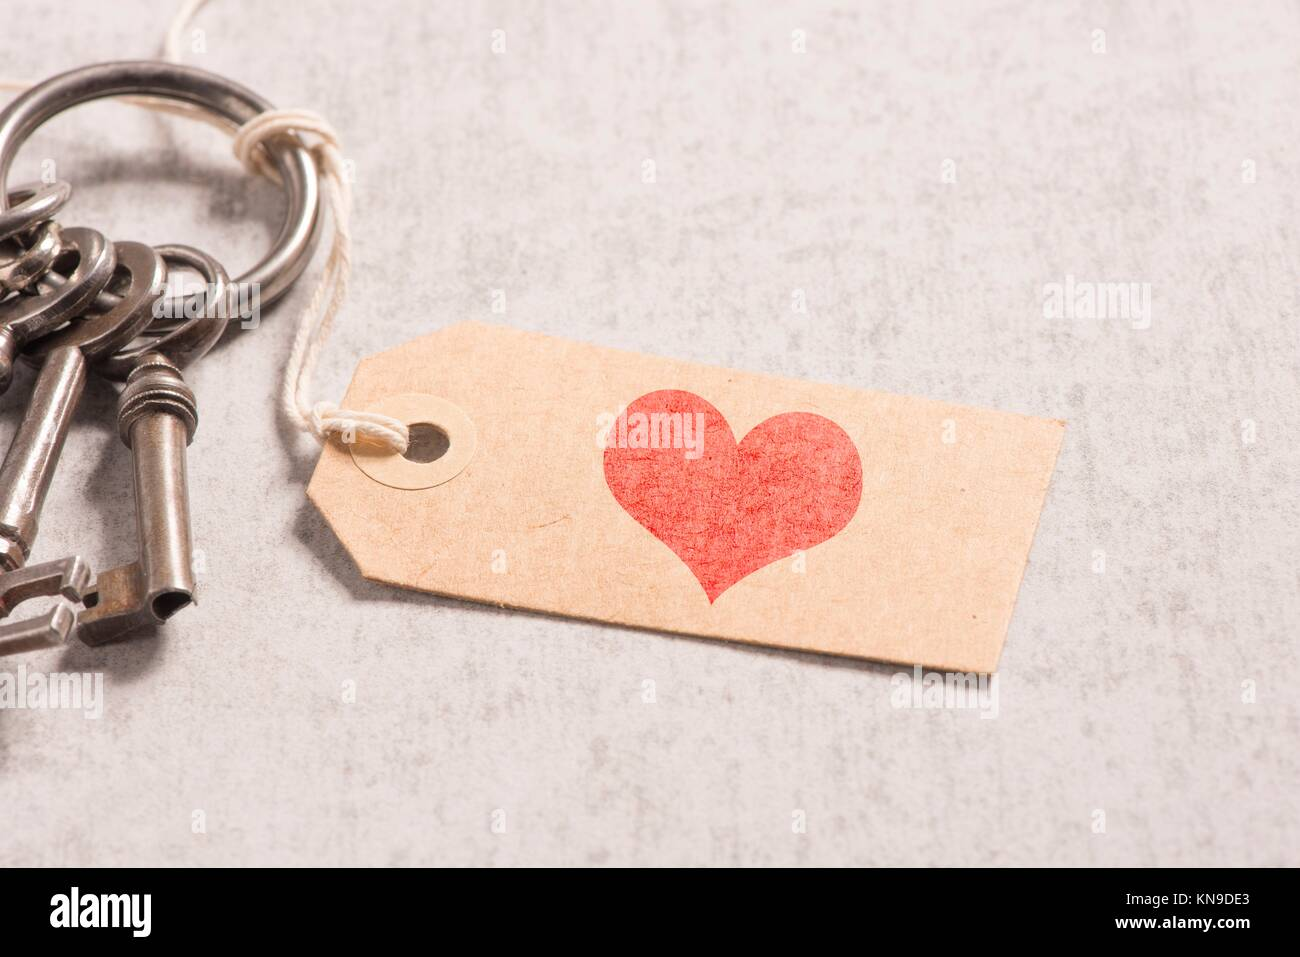 Heart Symbol On Key Tag Concept Of Love Romance And Vintage Stock